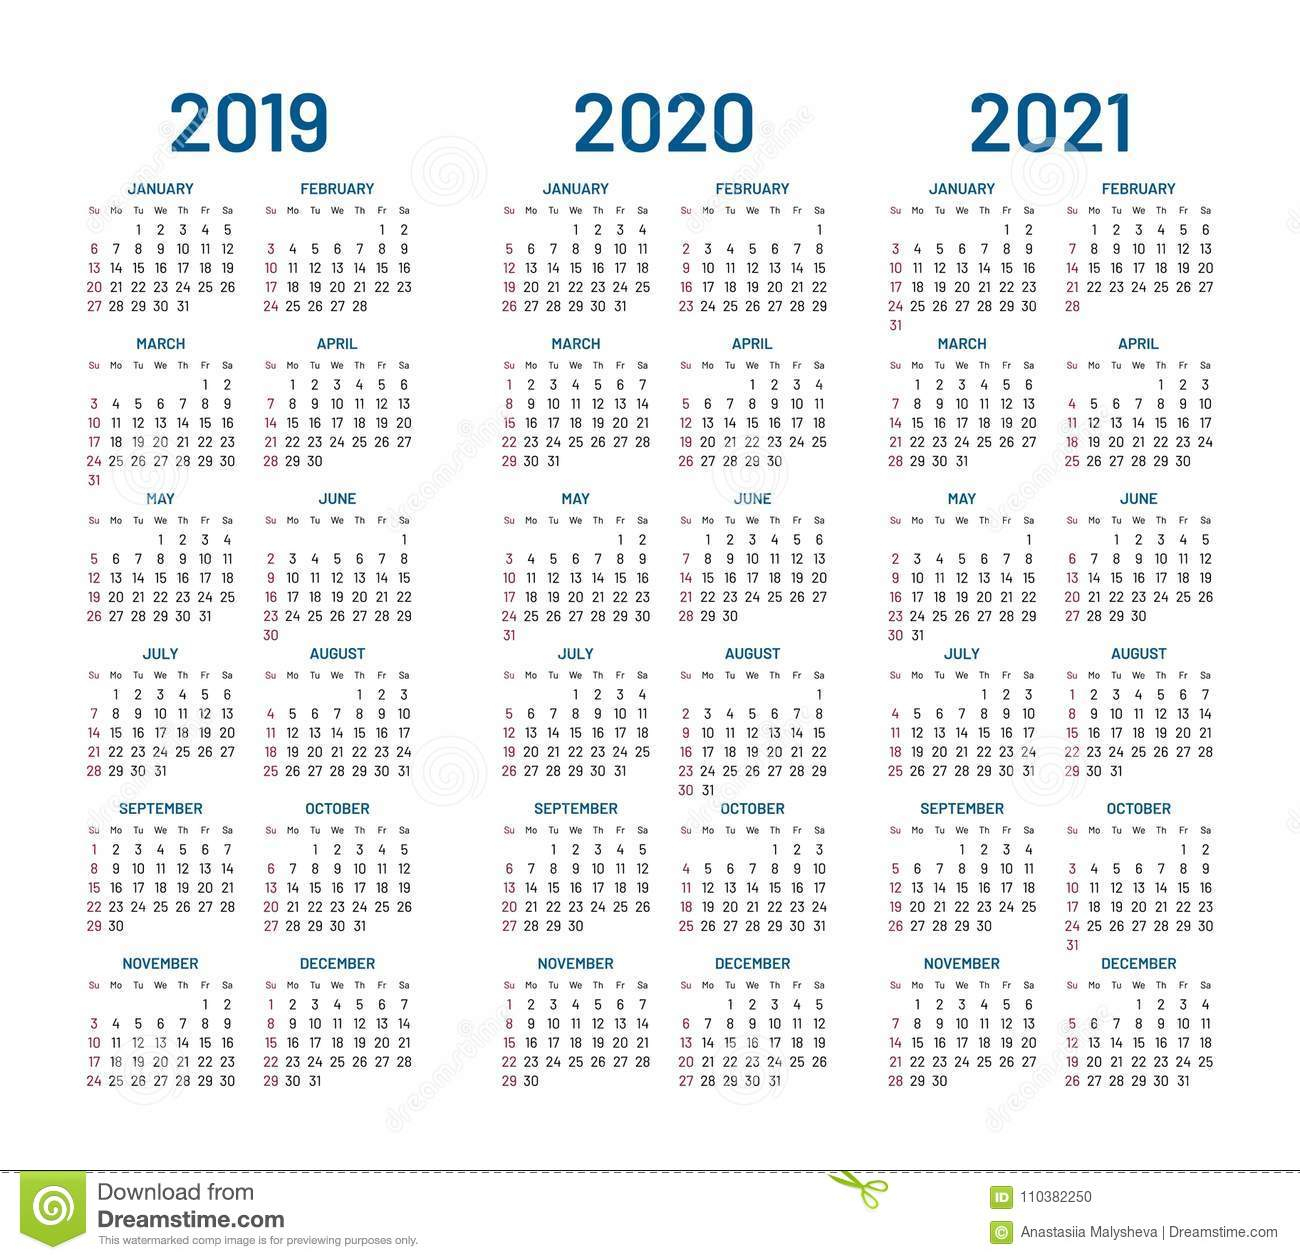 454 Retail Calendar 2019 Vs 2020 – Samyysandra With Regard To 454 Retail Calendar 2020